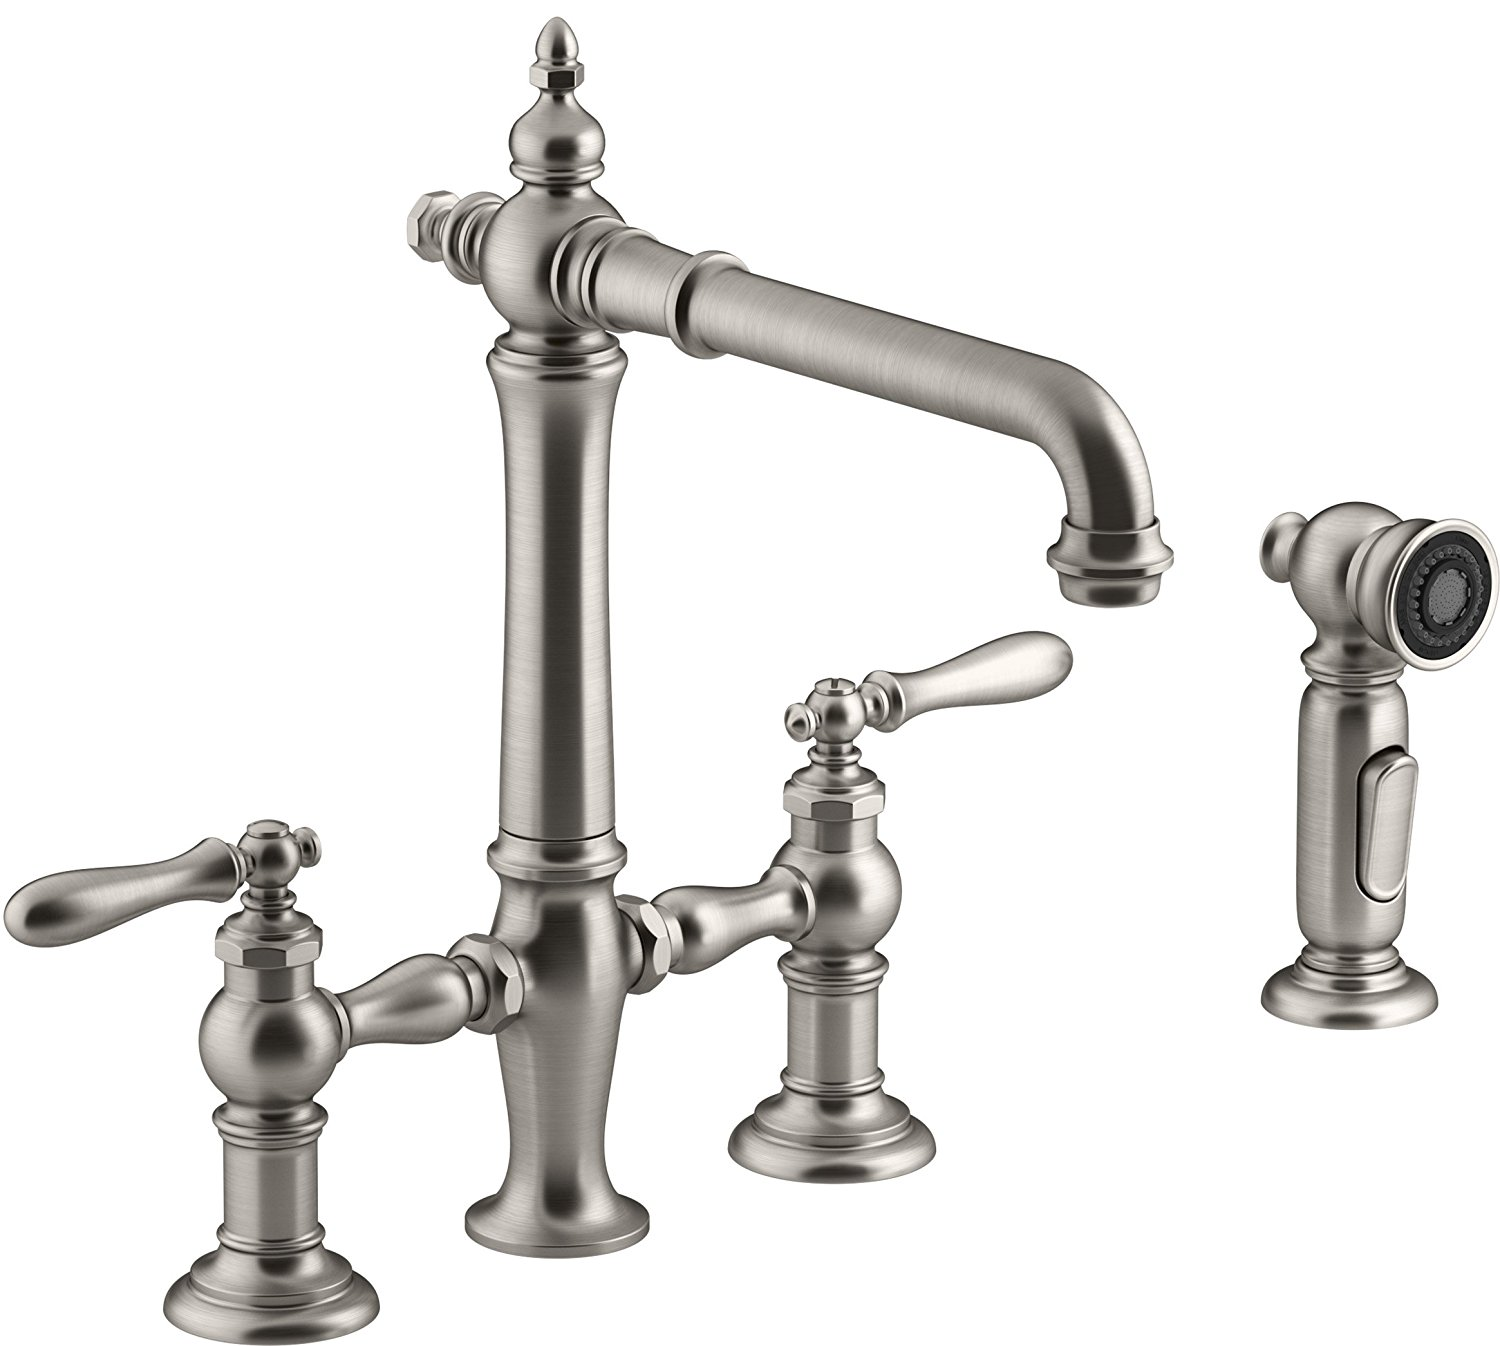 Stylish And Functional Farmhouse Kitchen Faucets The